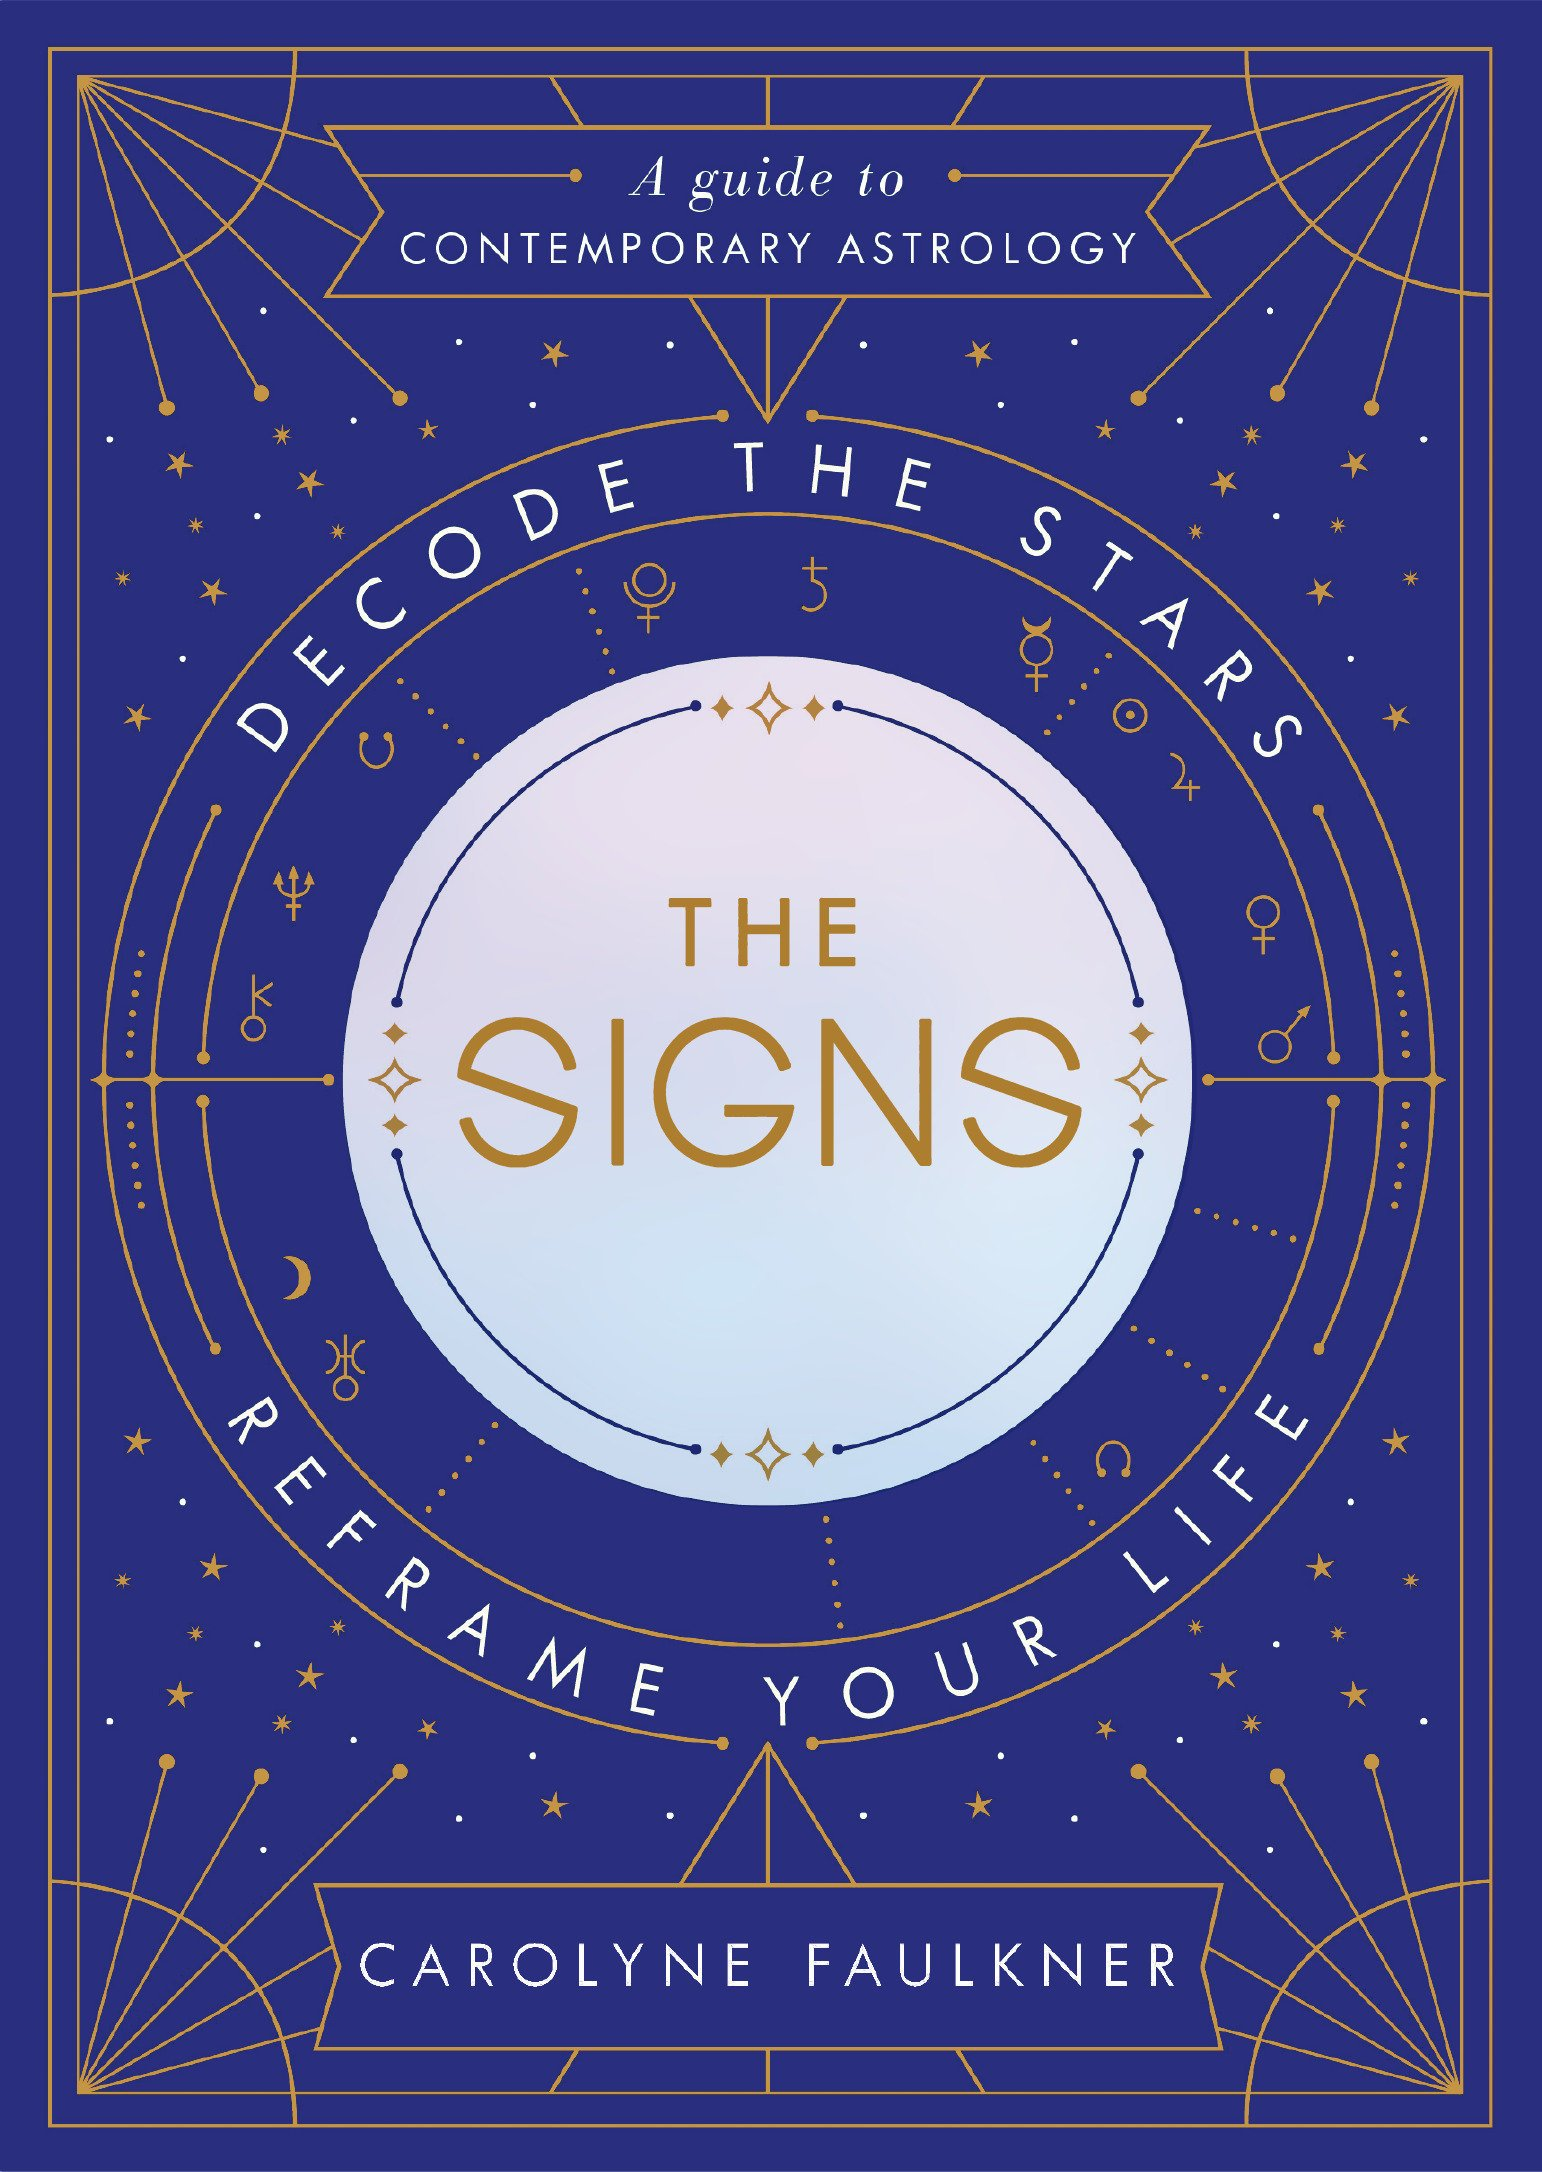 The Signs Decode The Stars Reframe Your Life Carolyne Faulkner